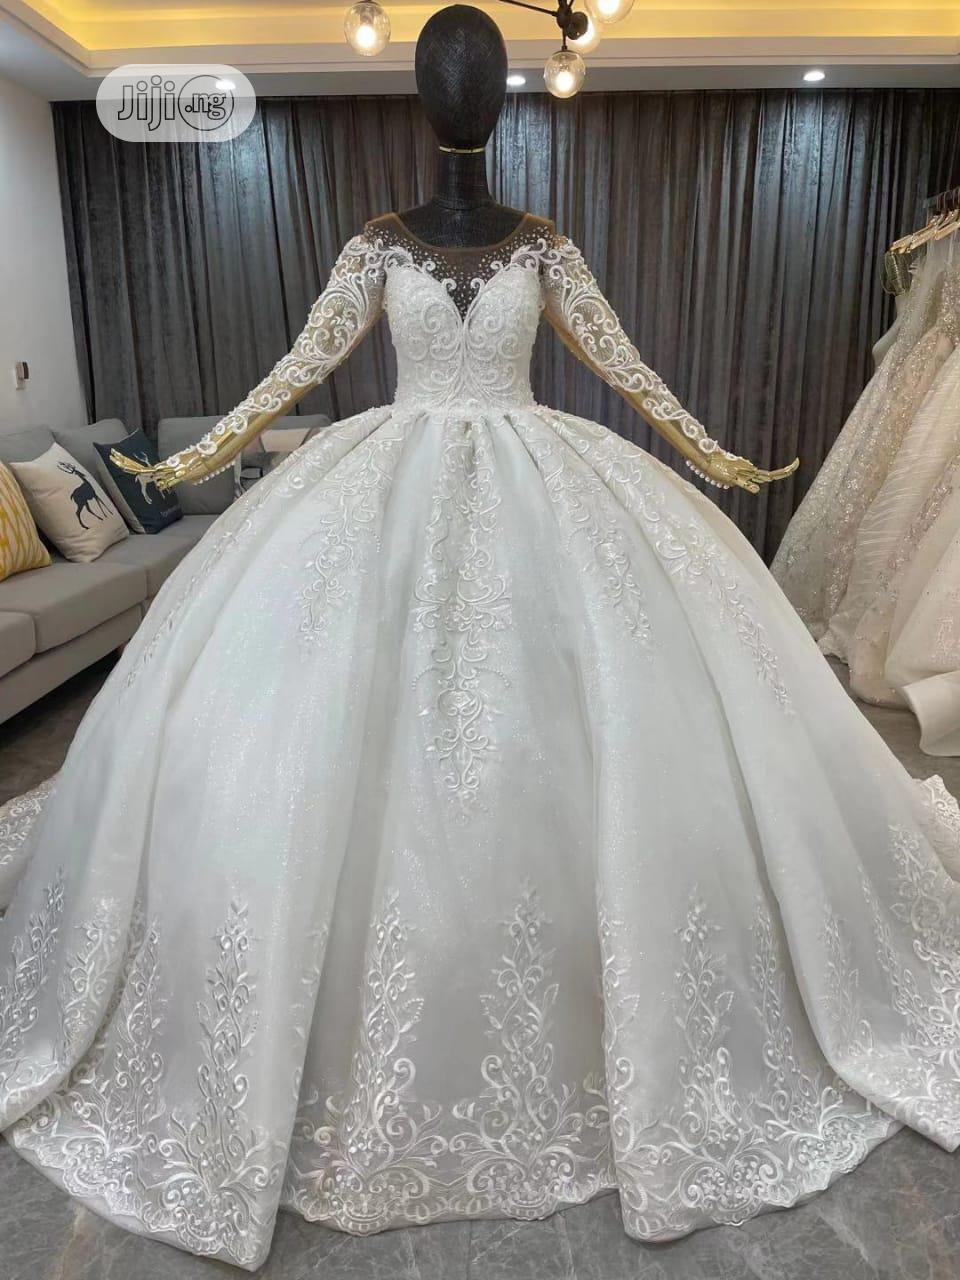 Ciarabridal Collection | Wedding Wear & Accessories for sale in Benin City, Edo State, Nigeria